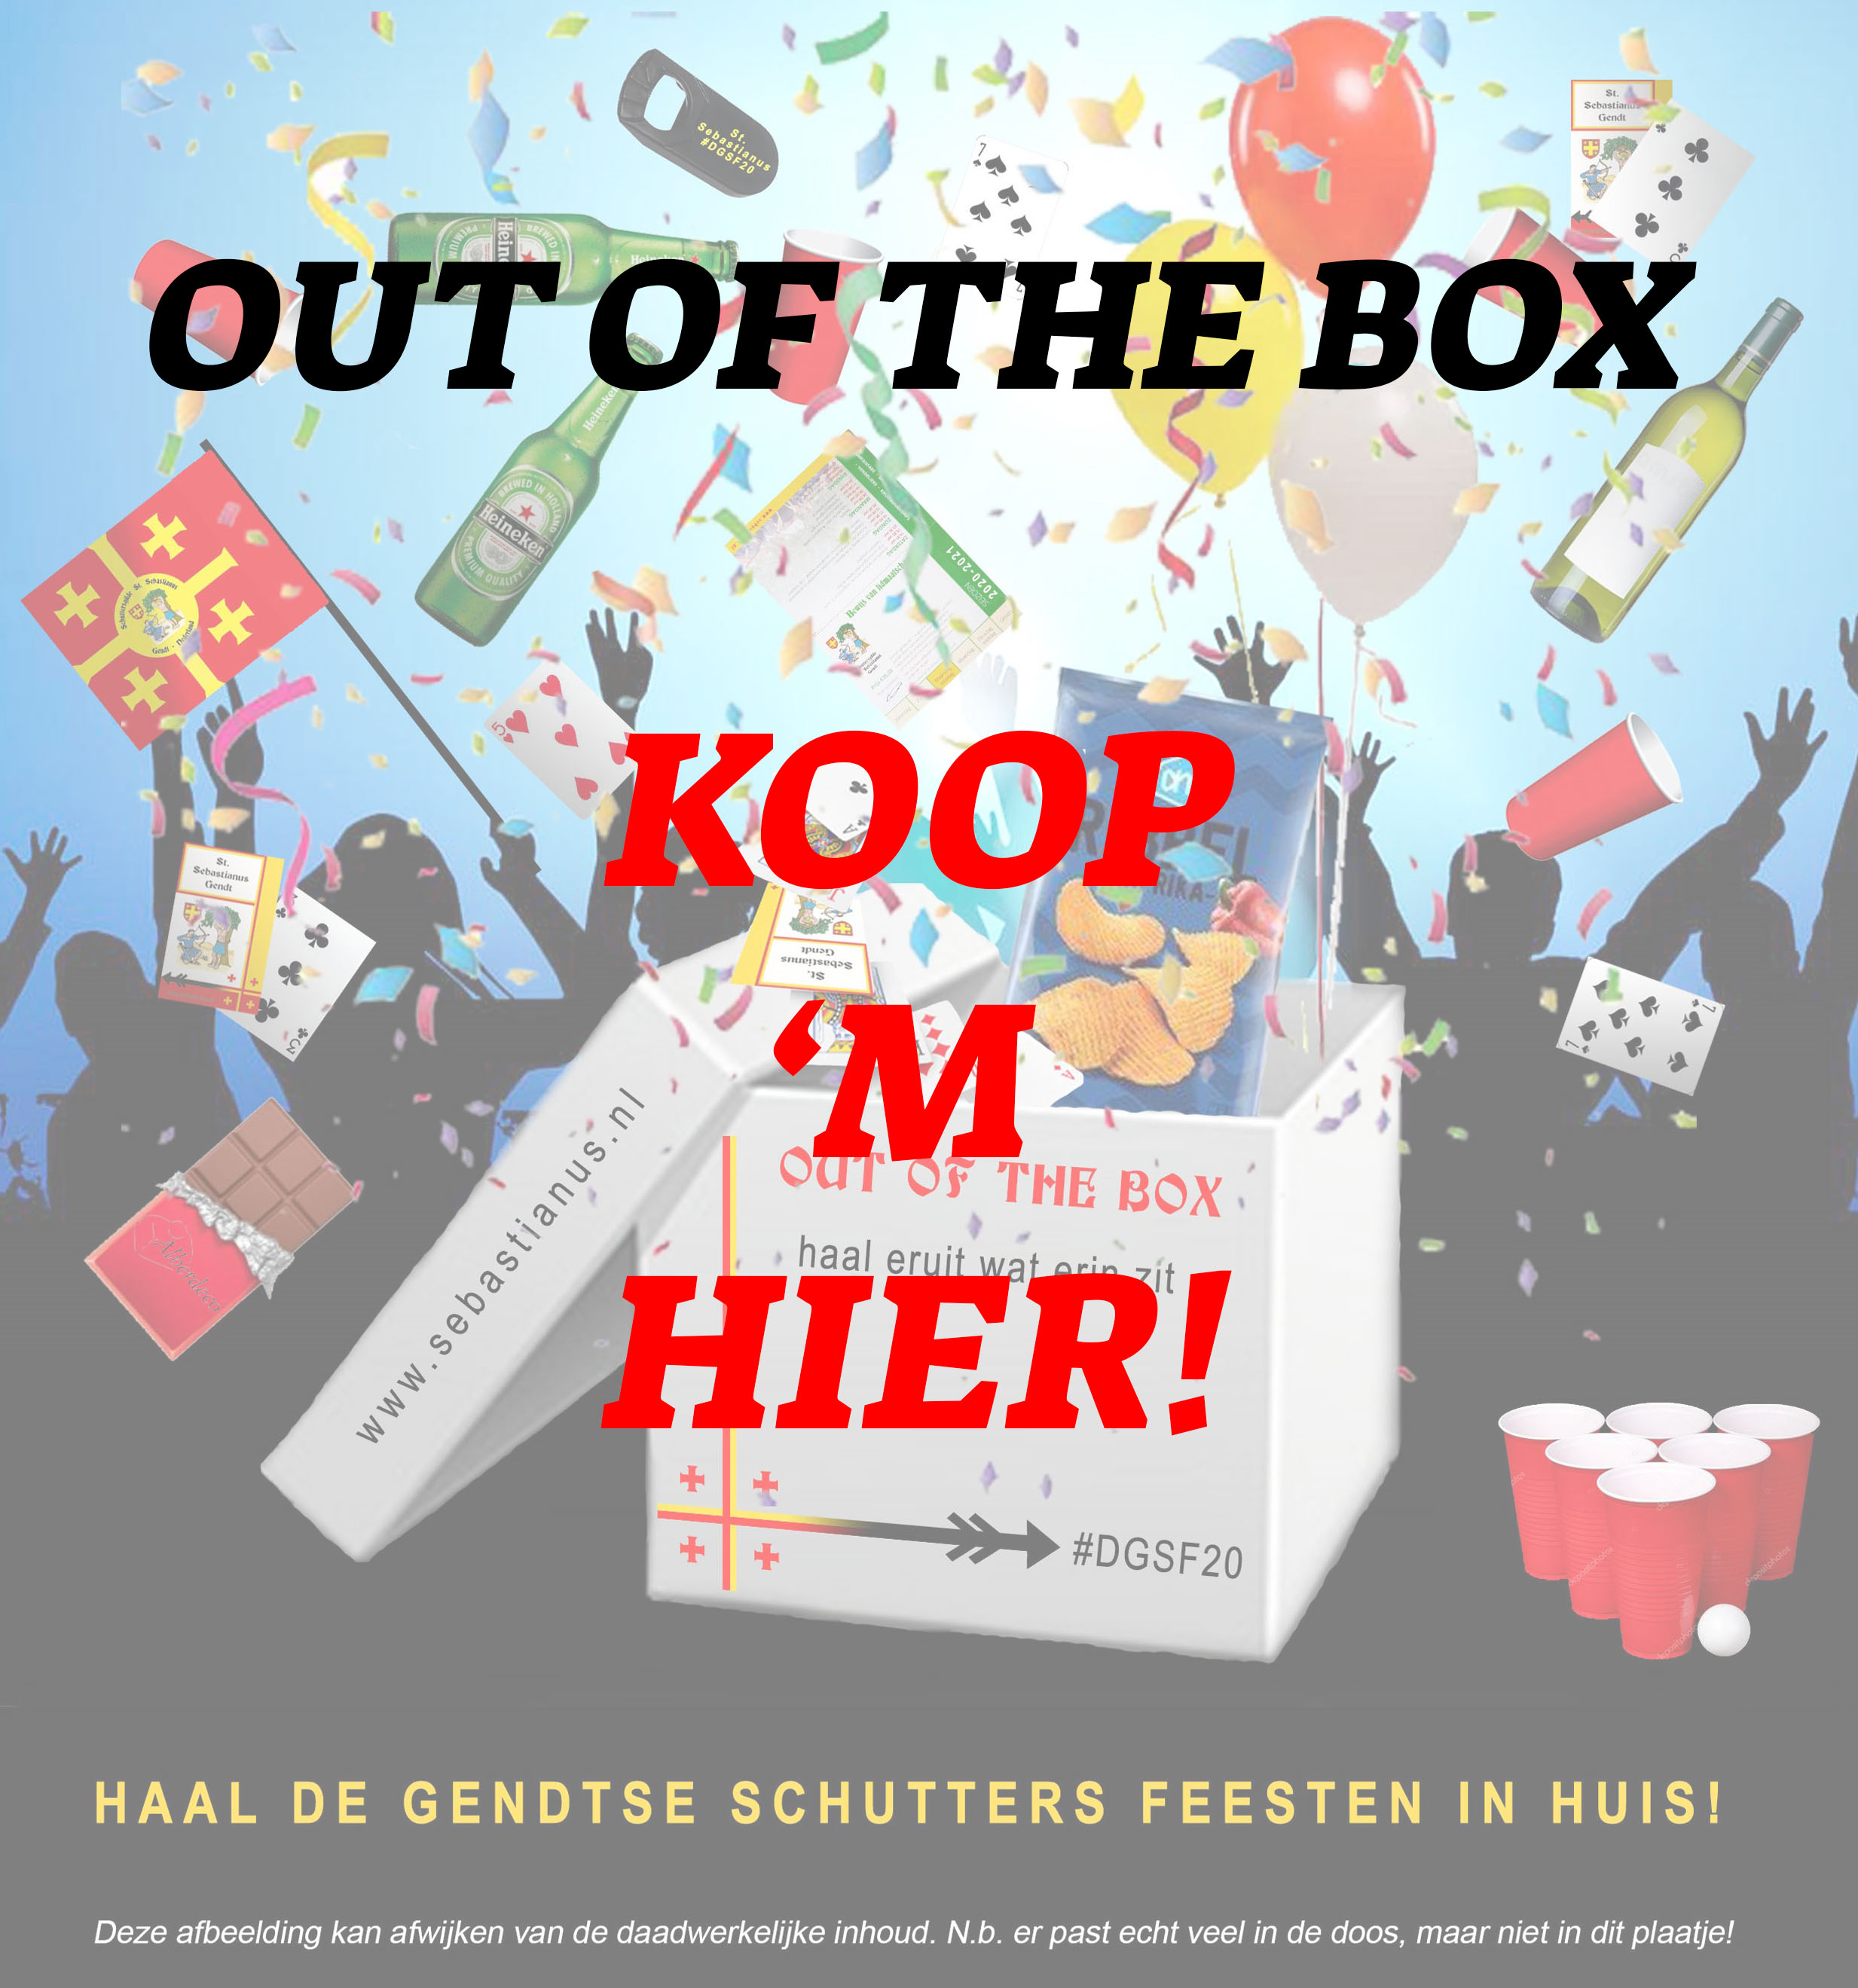 DGSF20 OUT OF THE BOX KOPEN